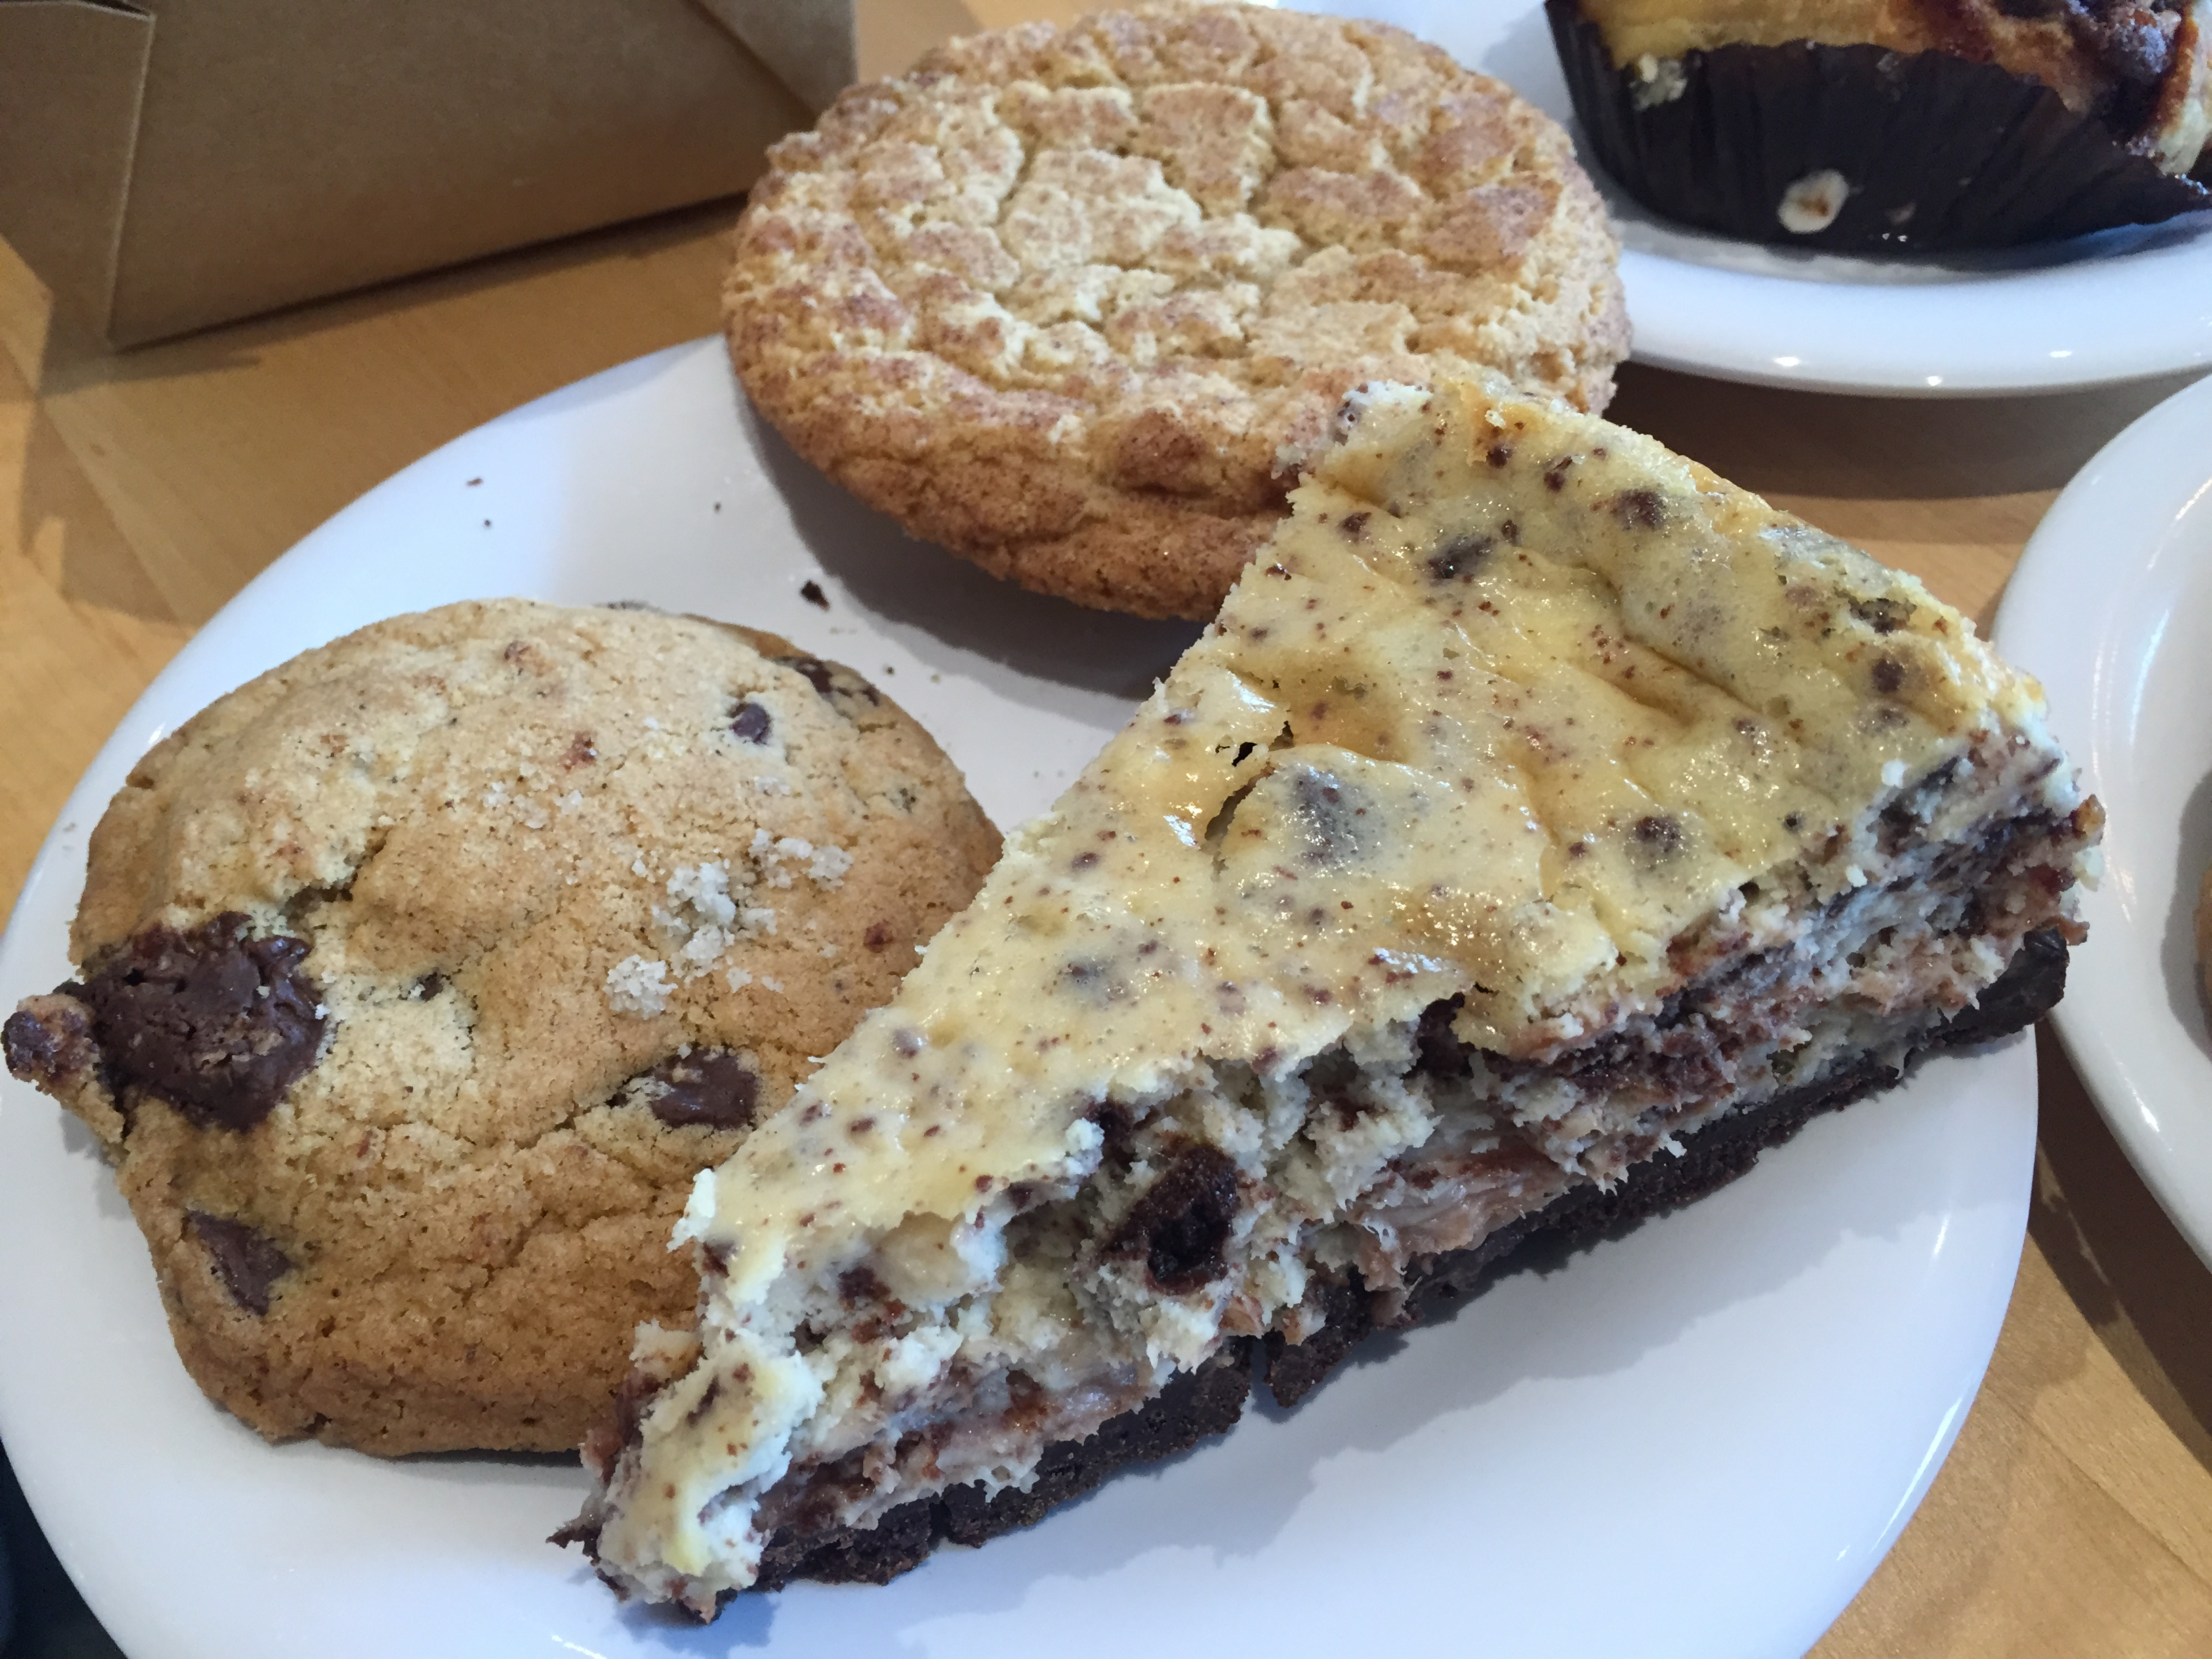 Close-up of cookies and cream cheesecake, chocolate chip cookie, and Snickerdoodle cookie,